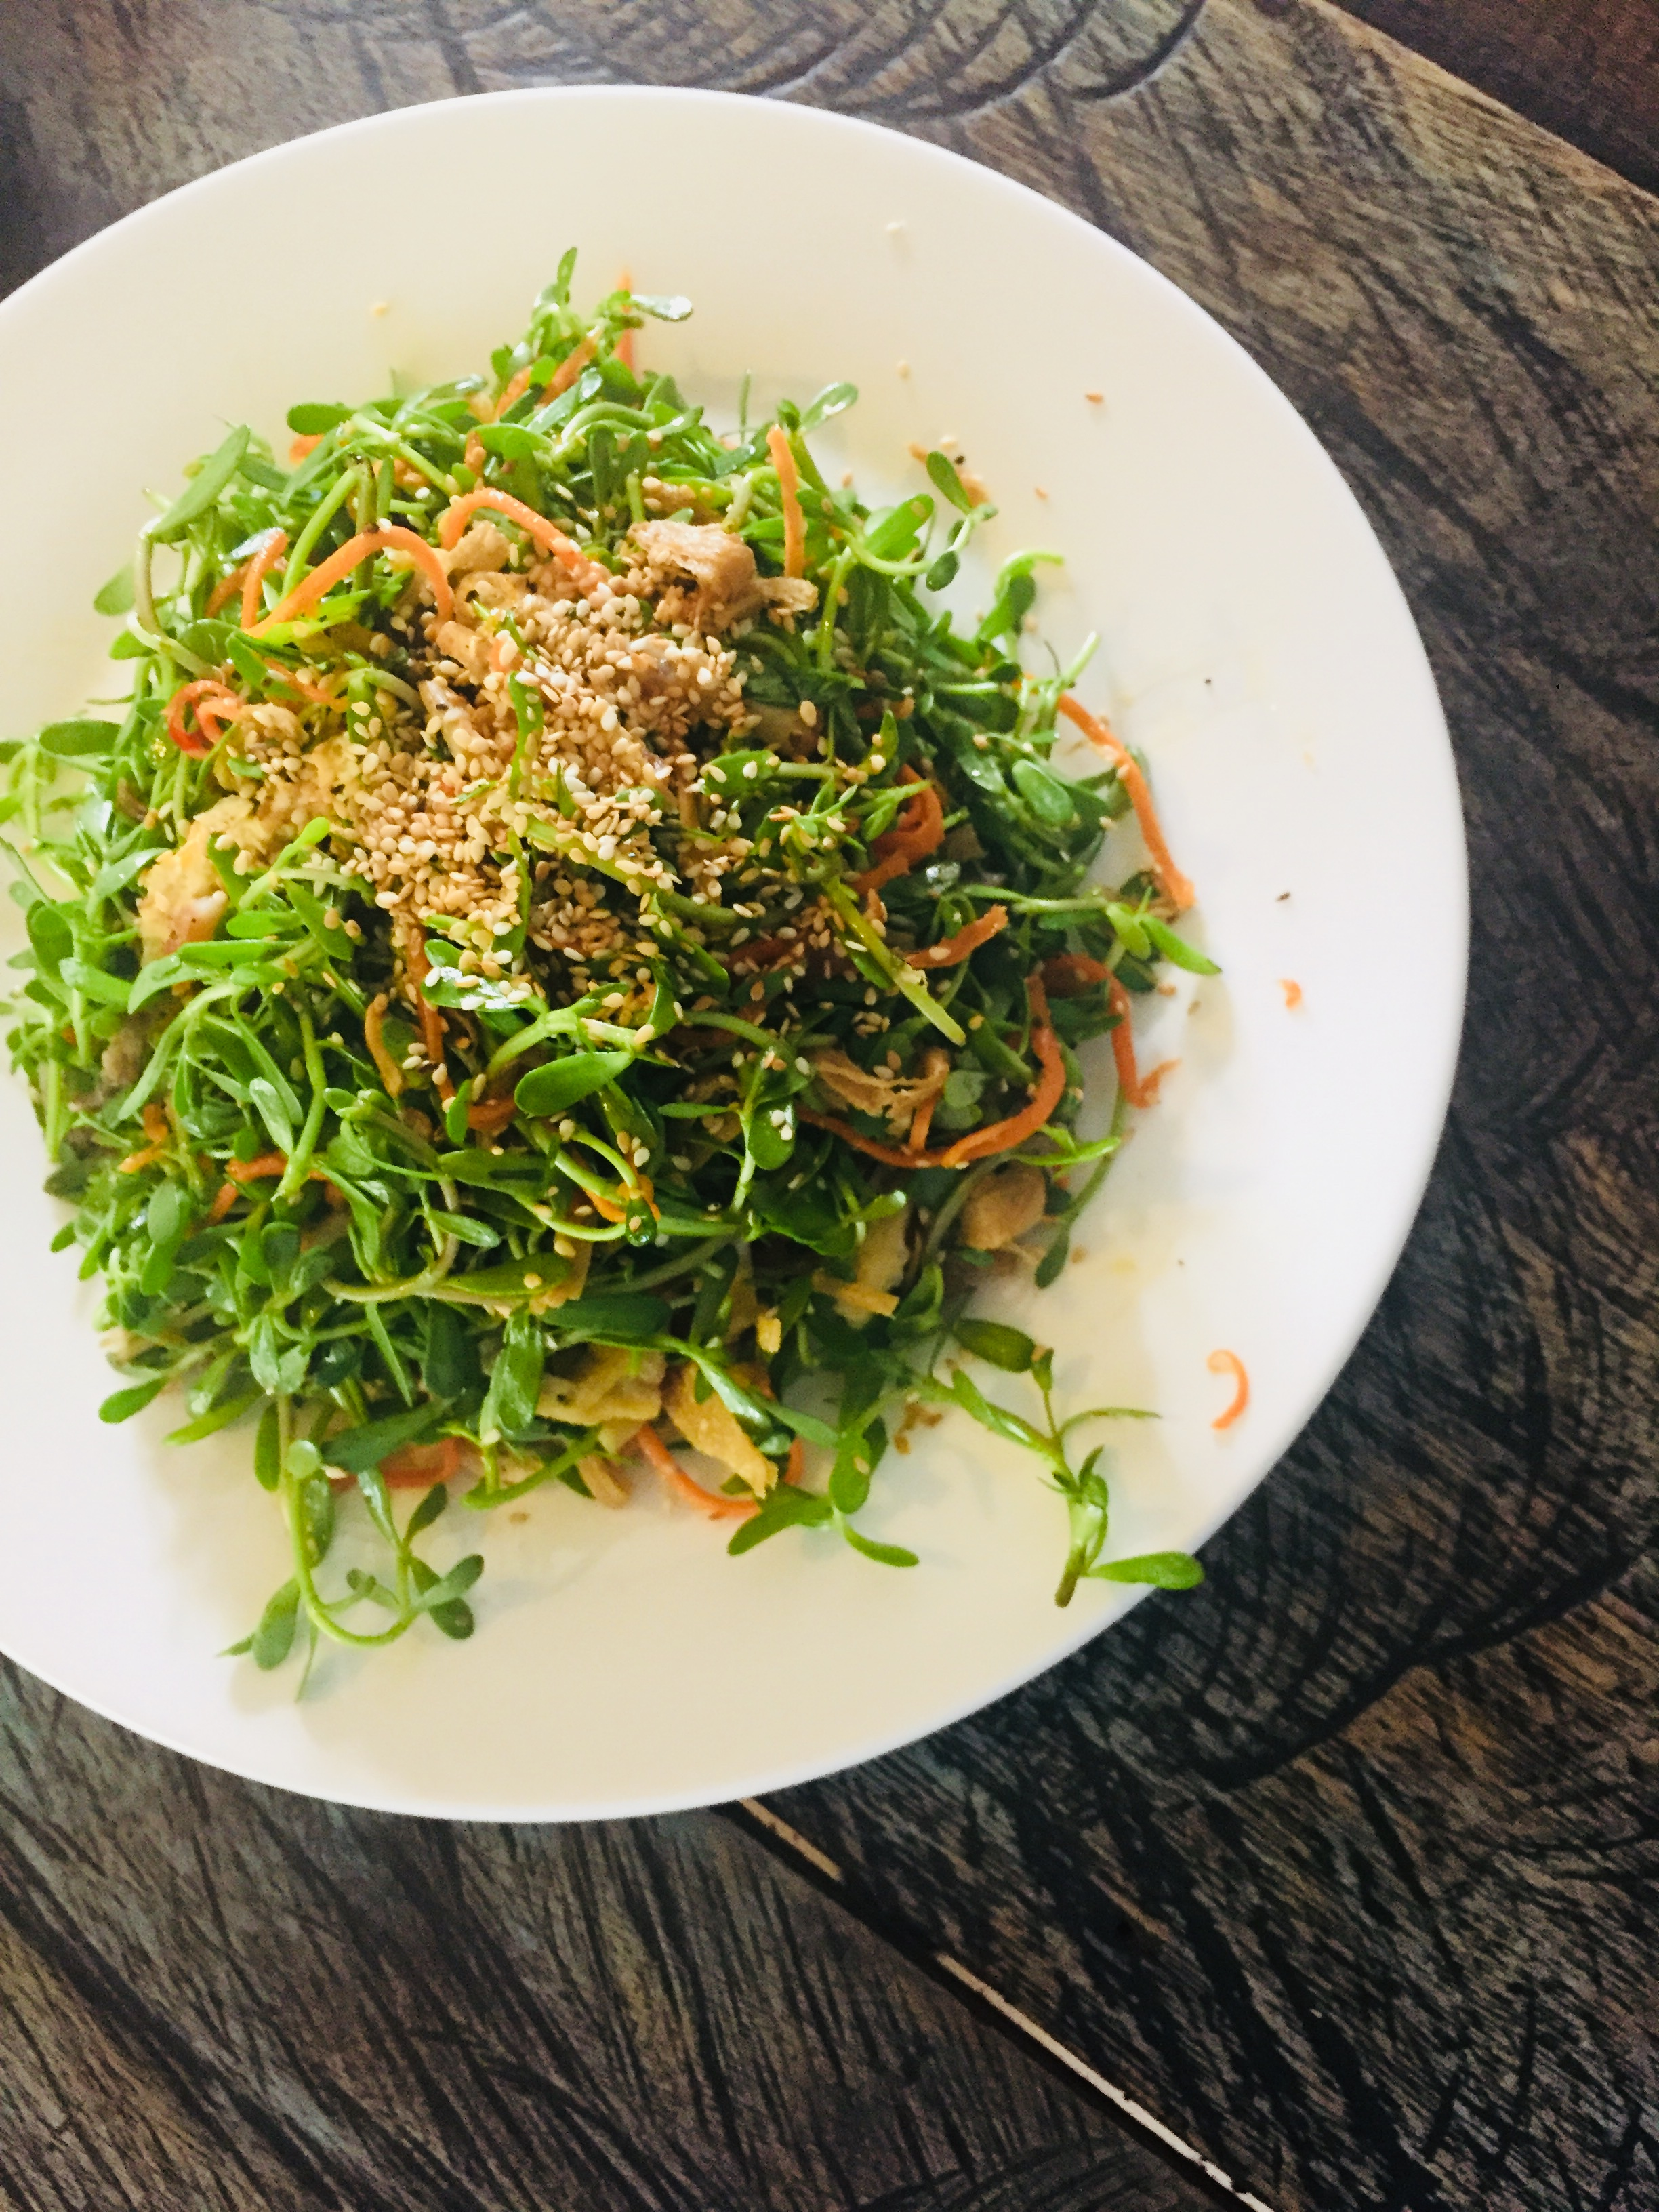 Knot grass salad from Quan Chay Am restaurant, Hoi An